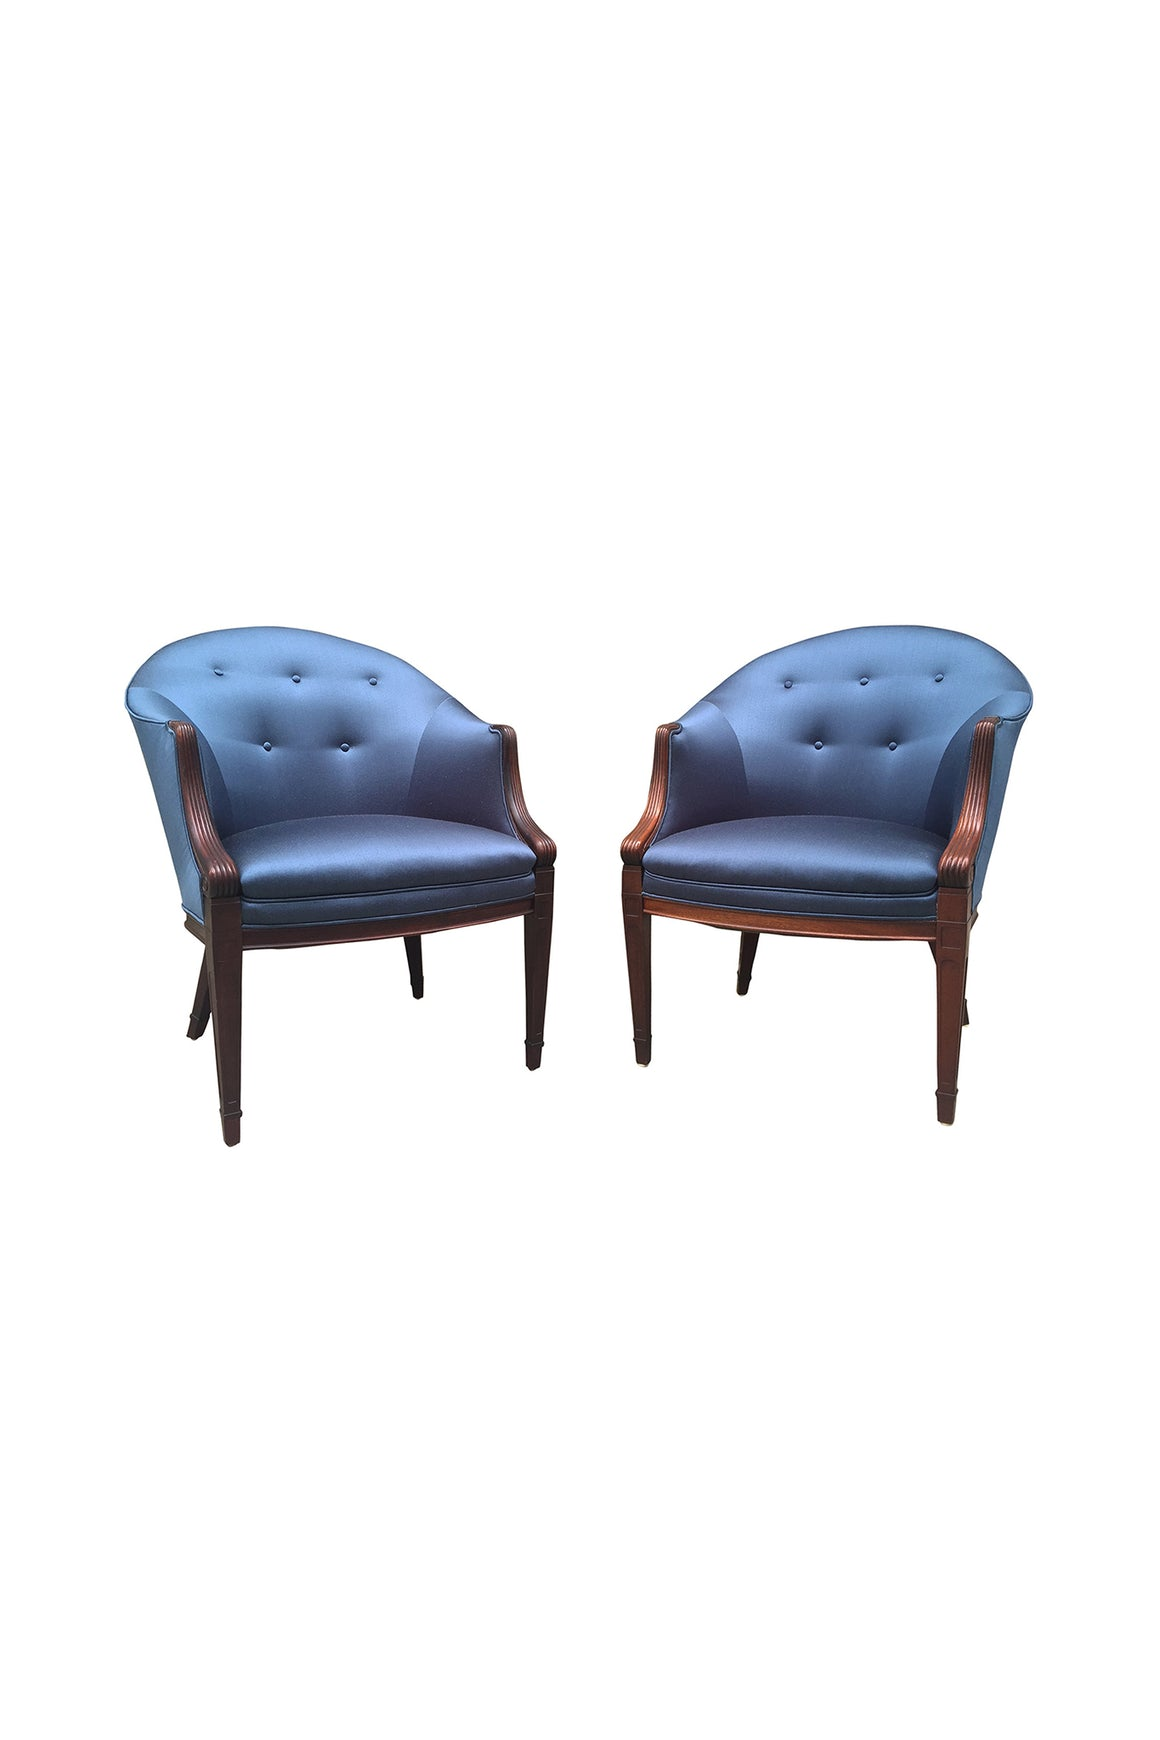 Pair of 1940s Sapphire Silk Easy Chairs by Frits Henningsen